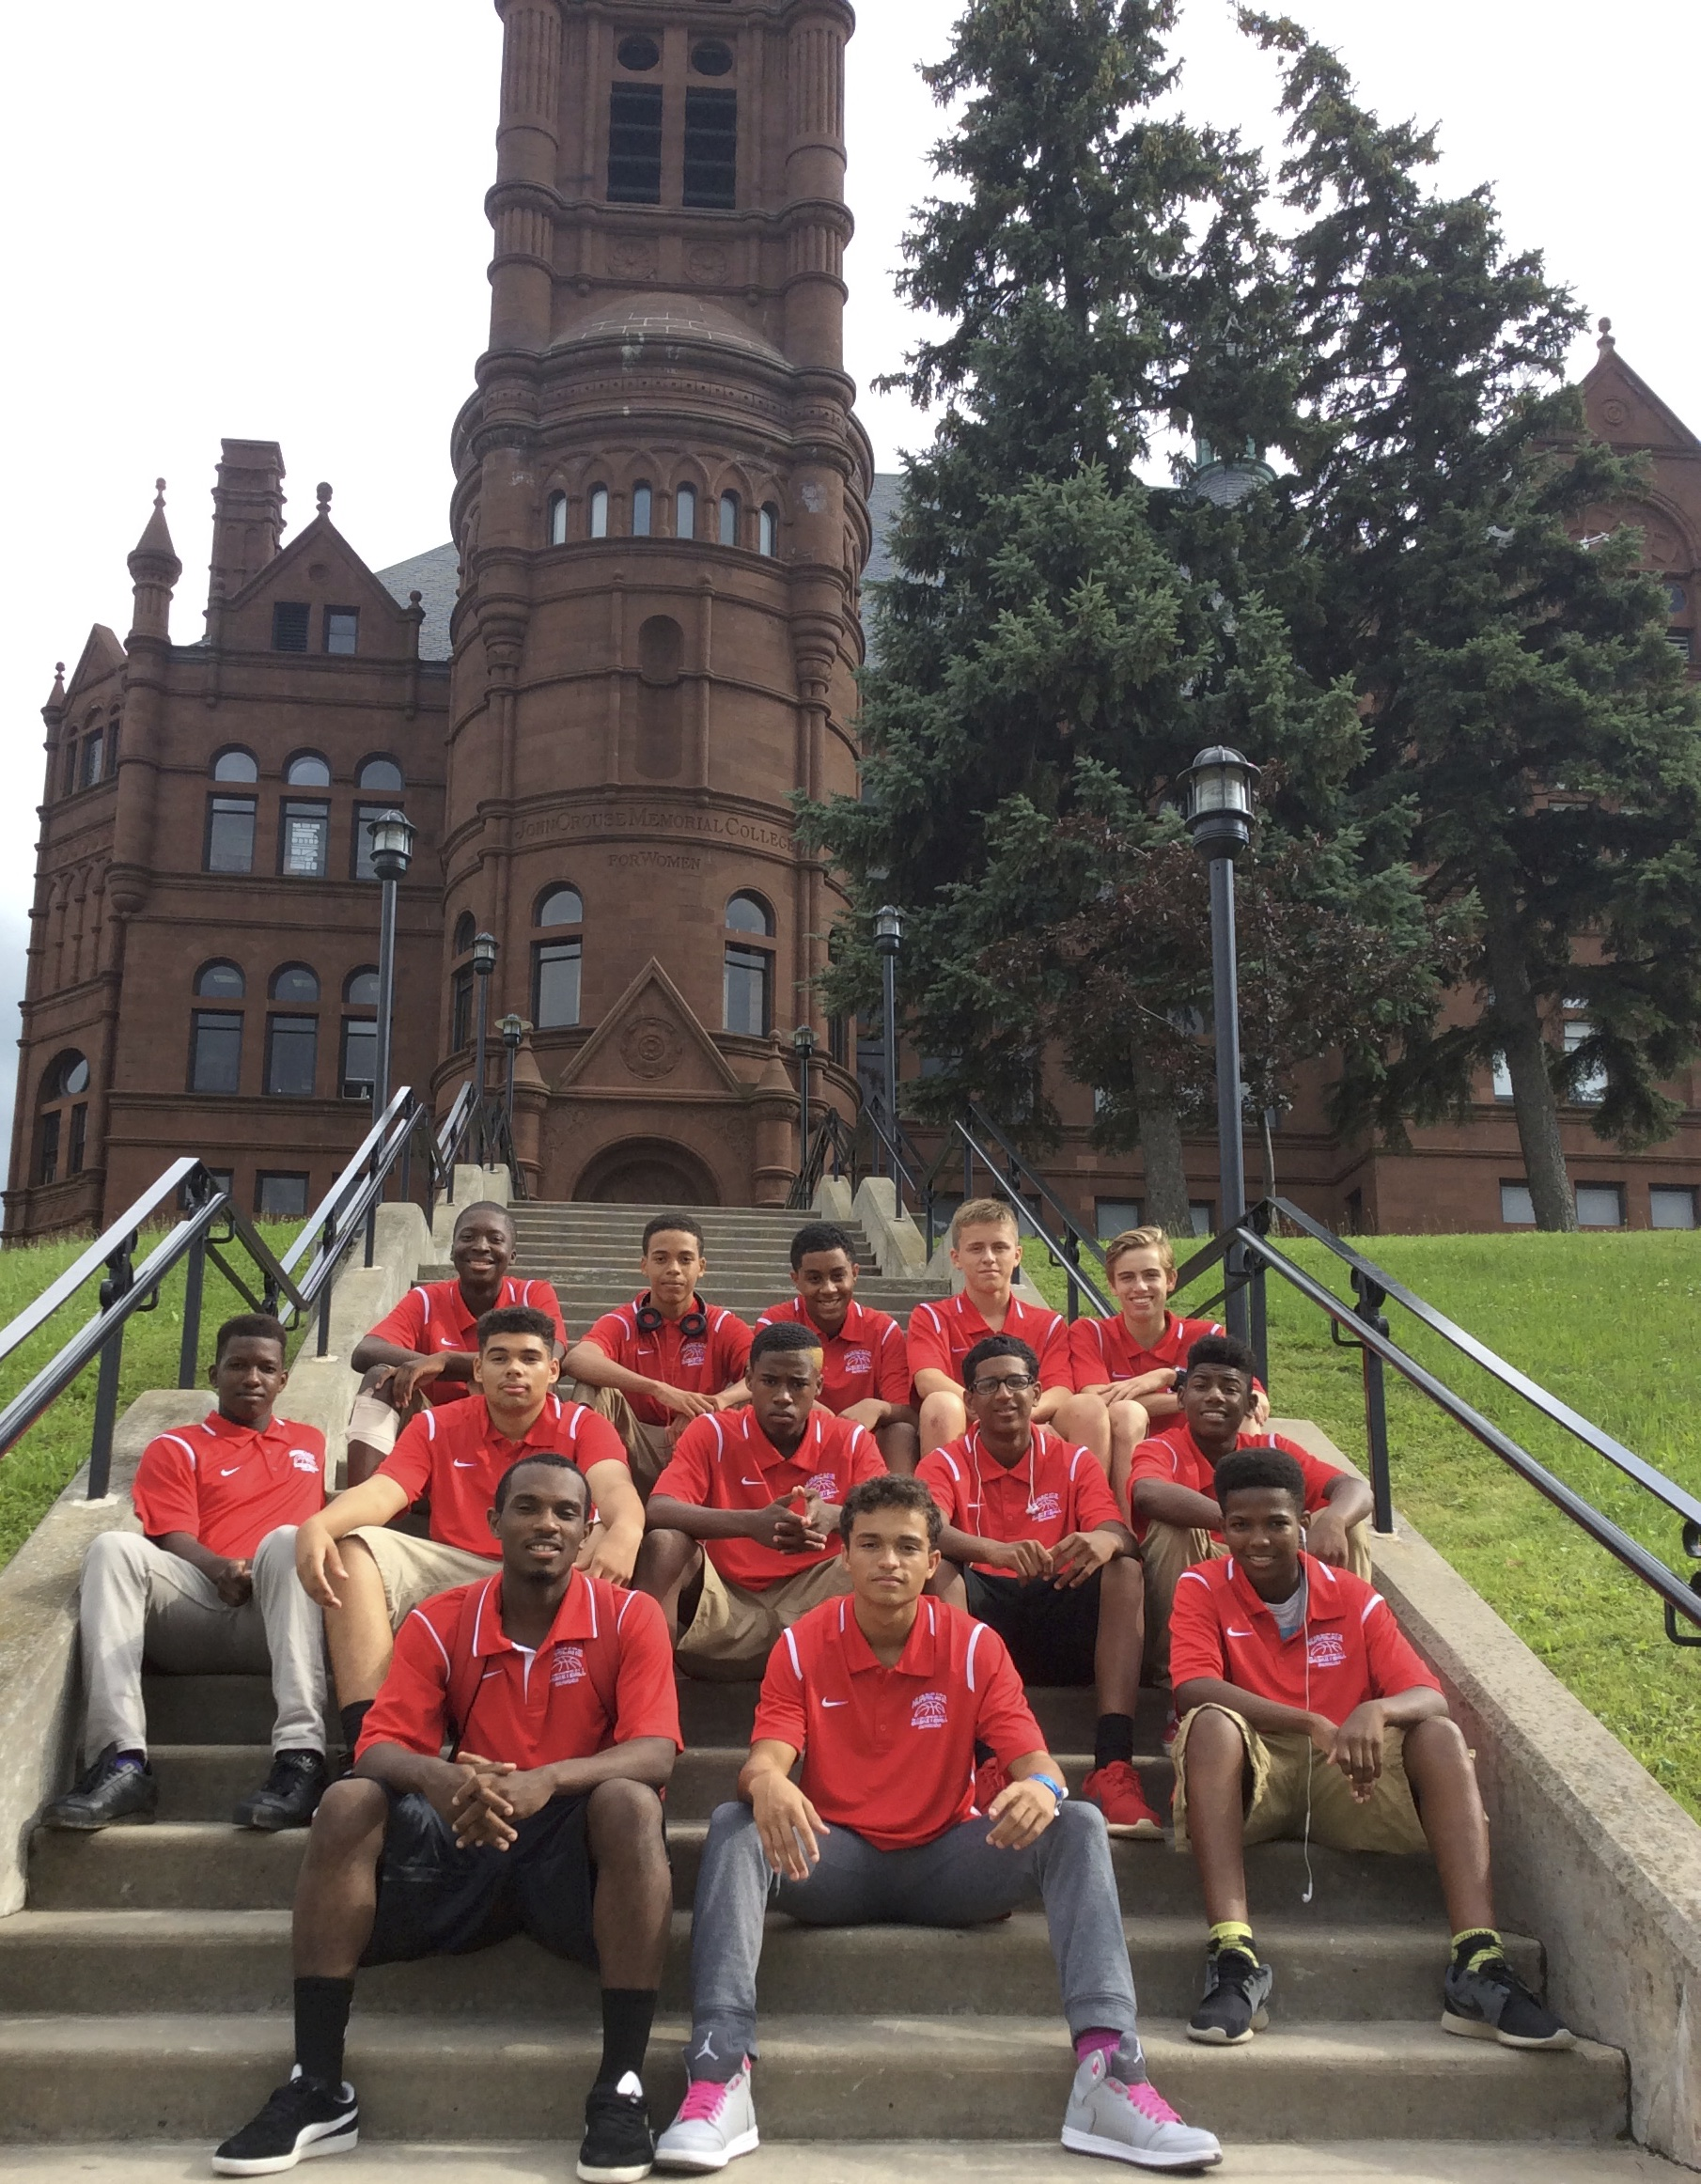 Team Hurricane on Syracuse University campus.